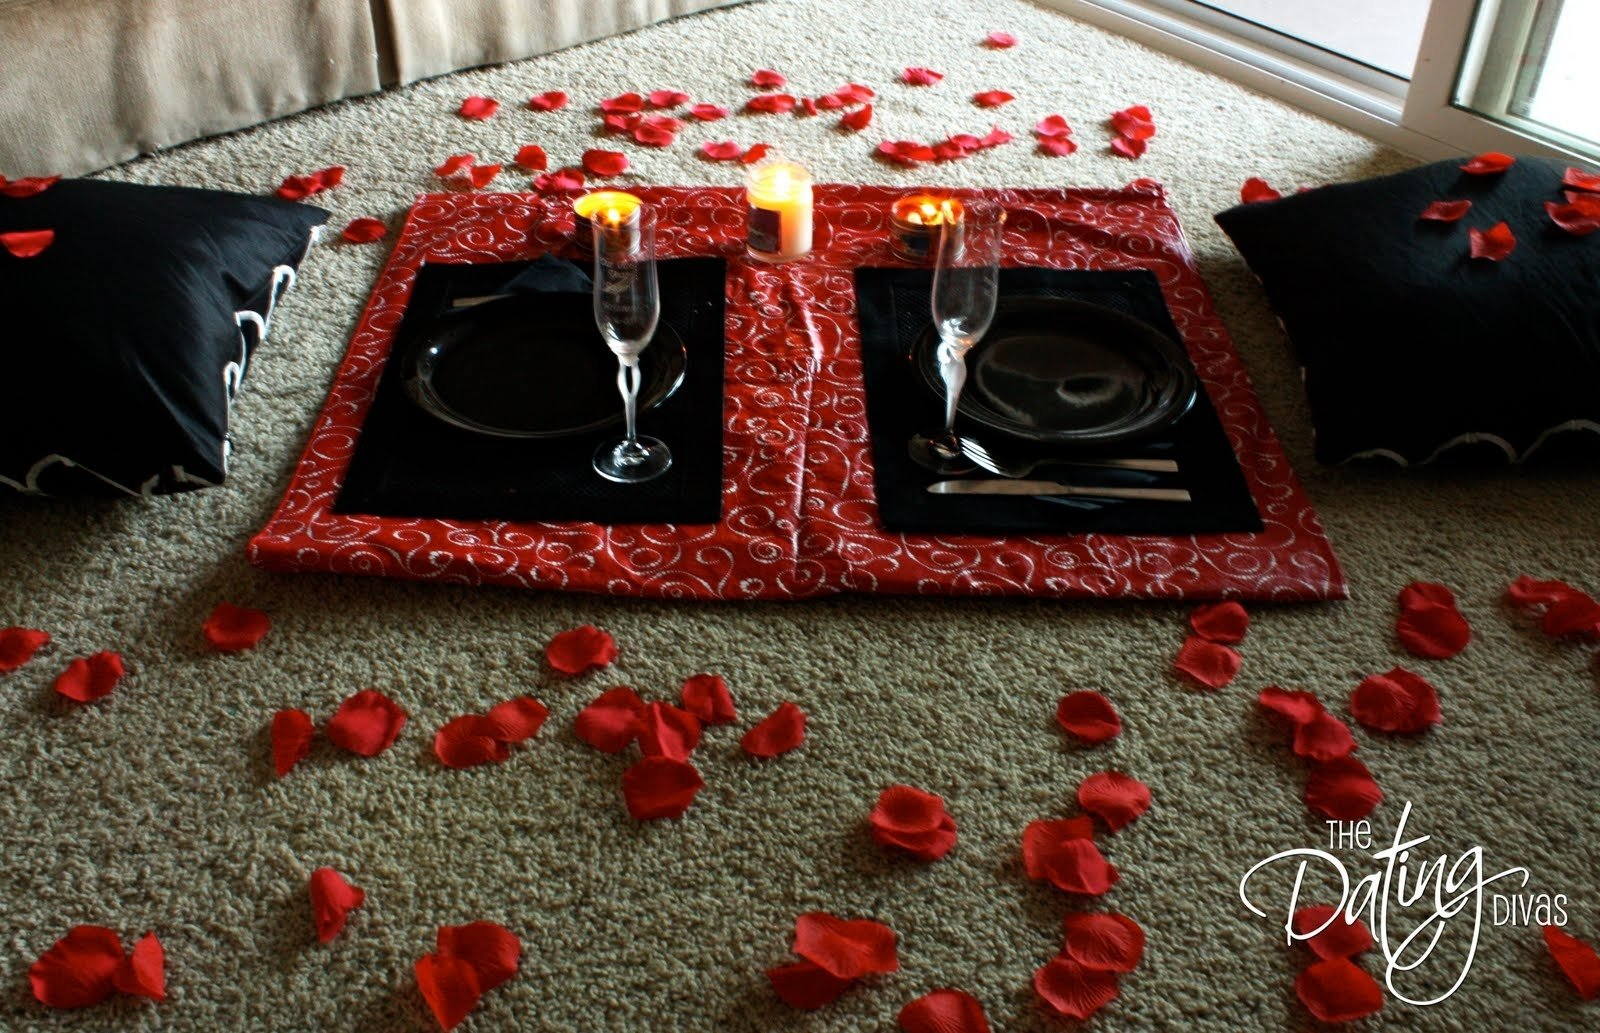 10 Stylish Romantic Picnic Ideas For Him set the mood with rose petals for romance with your spouse rose